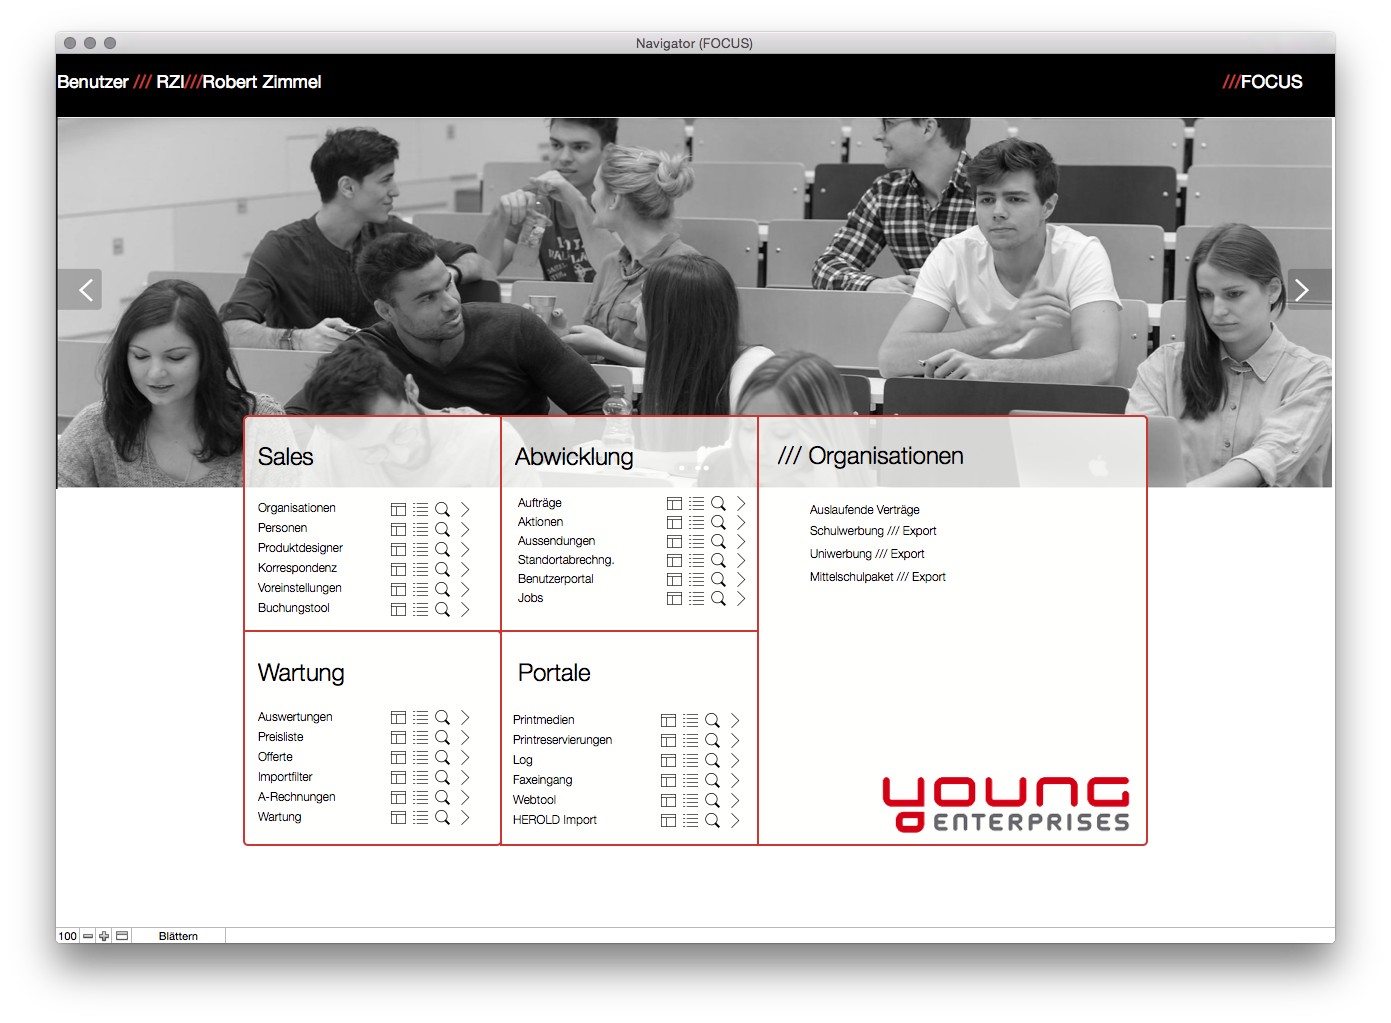 Young Enterprises FOCUS / Redesign